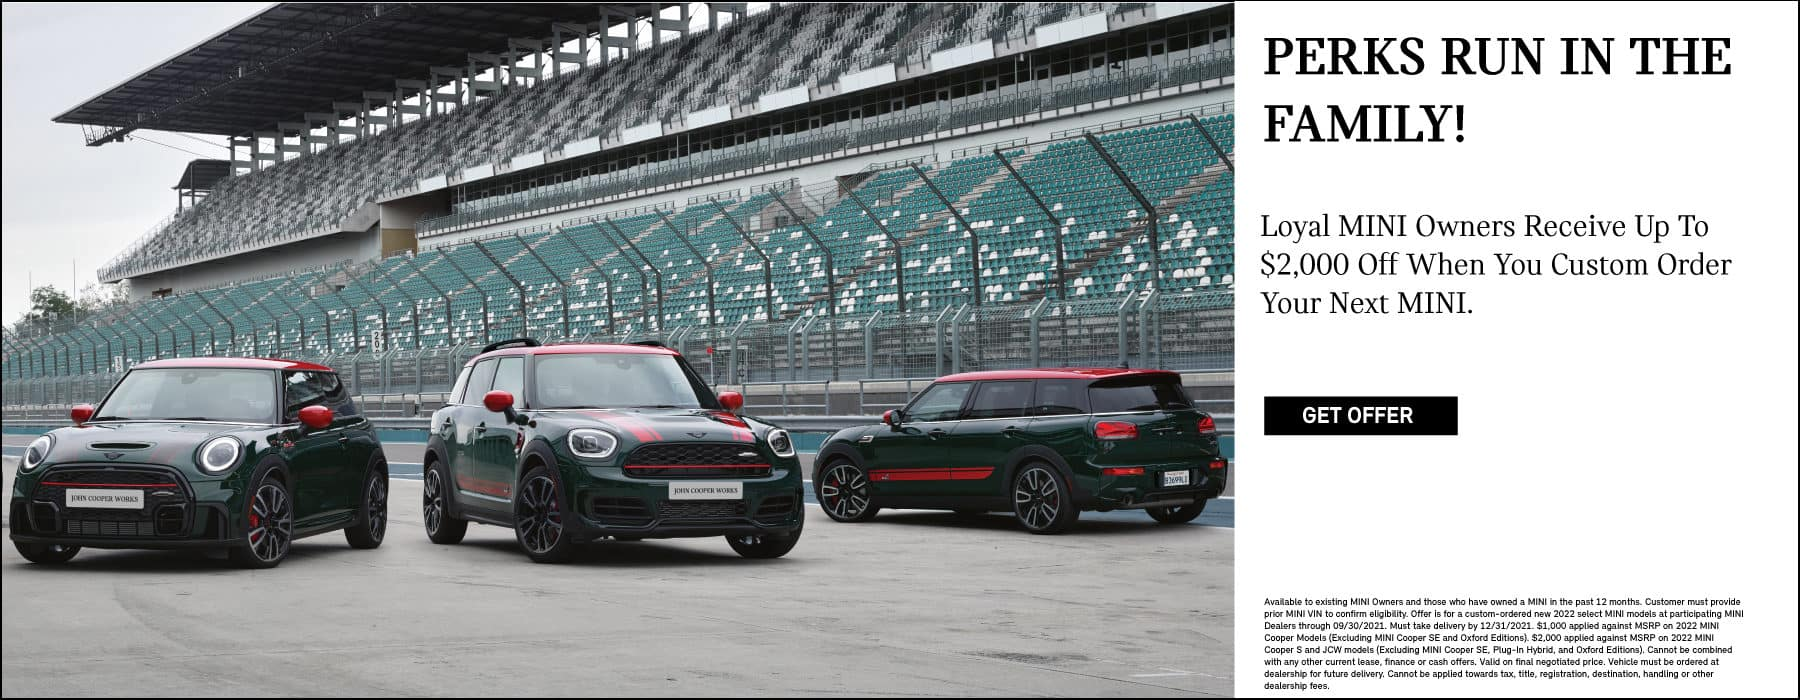 Perks run in the family! Loyalty customers get $2,000 off their next custom order MINI.